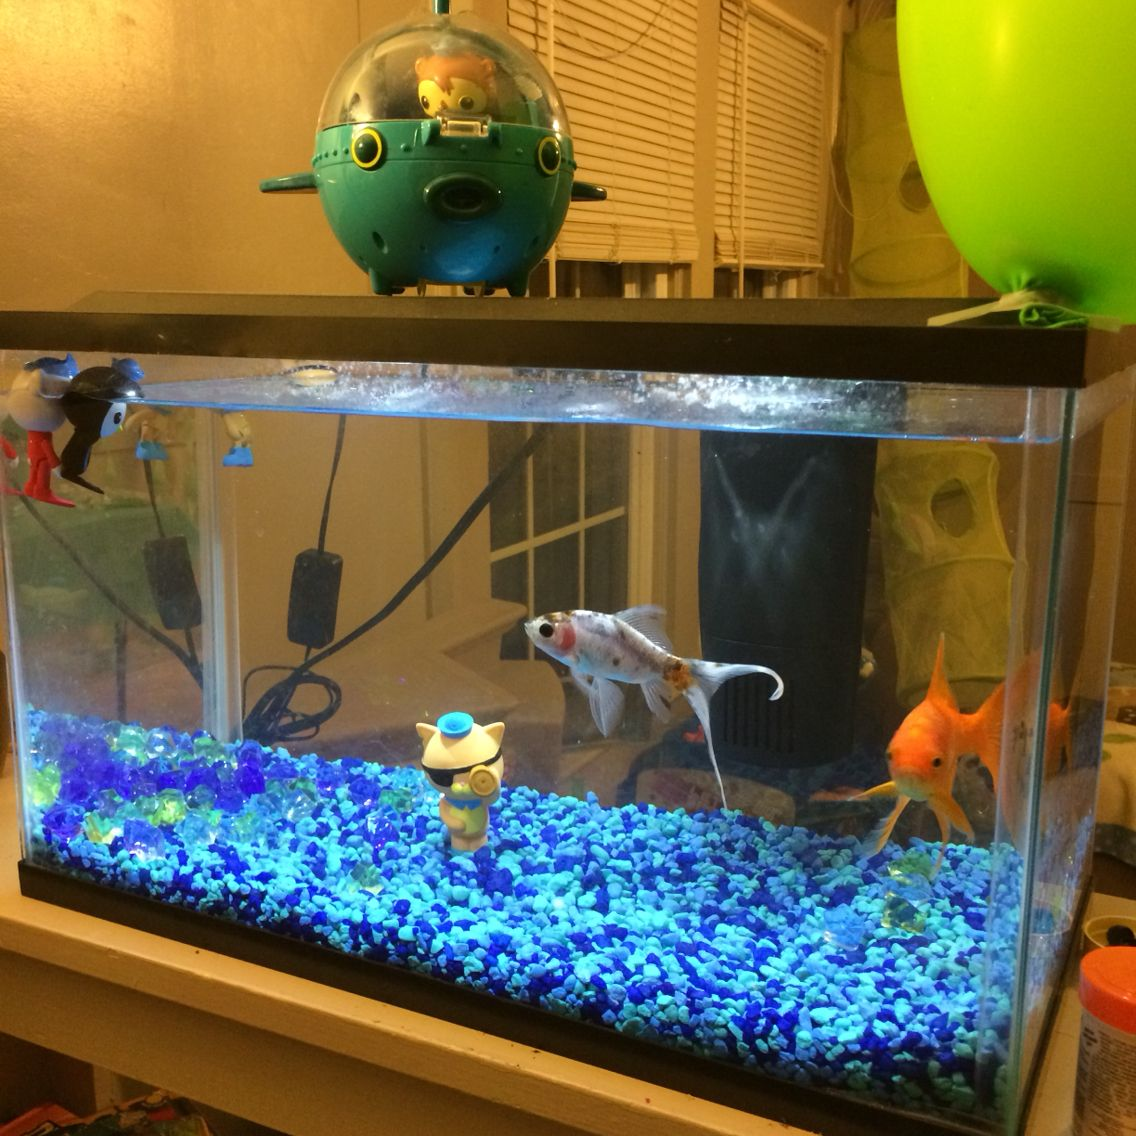 Fish tank toys - Most Octonaut Toys Are Water Friendly So Put Them In A Fish Tank With Or Without